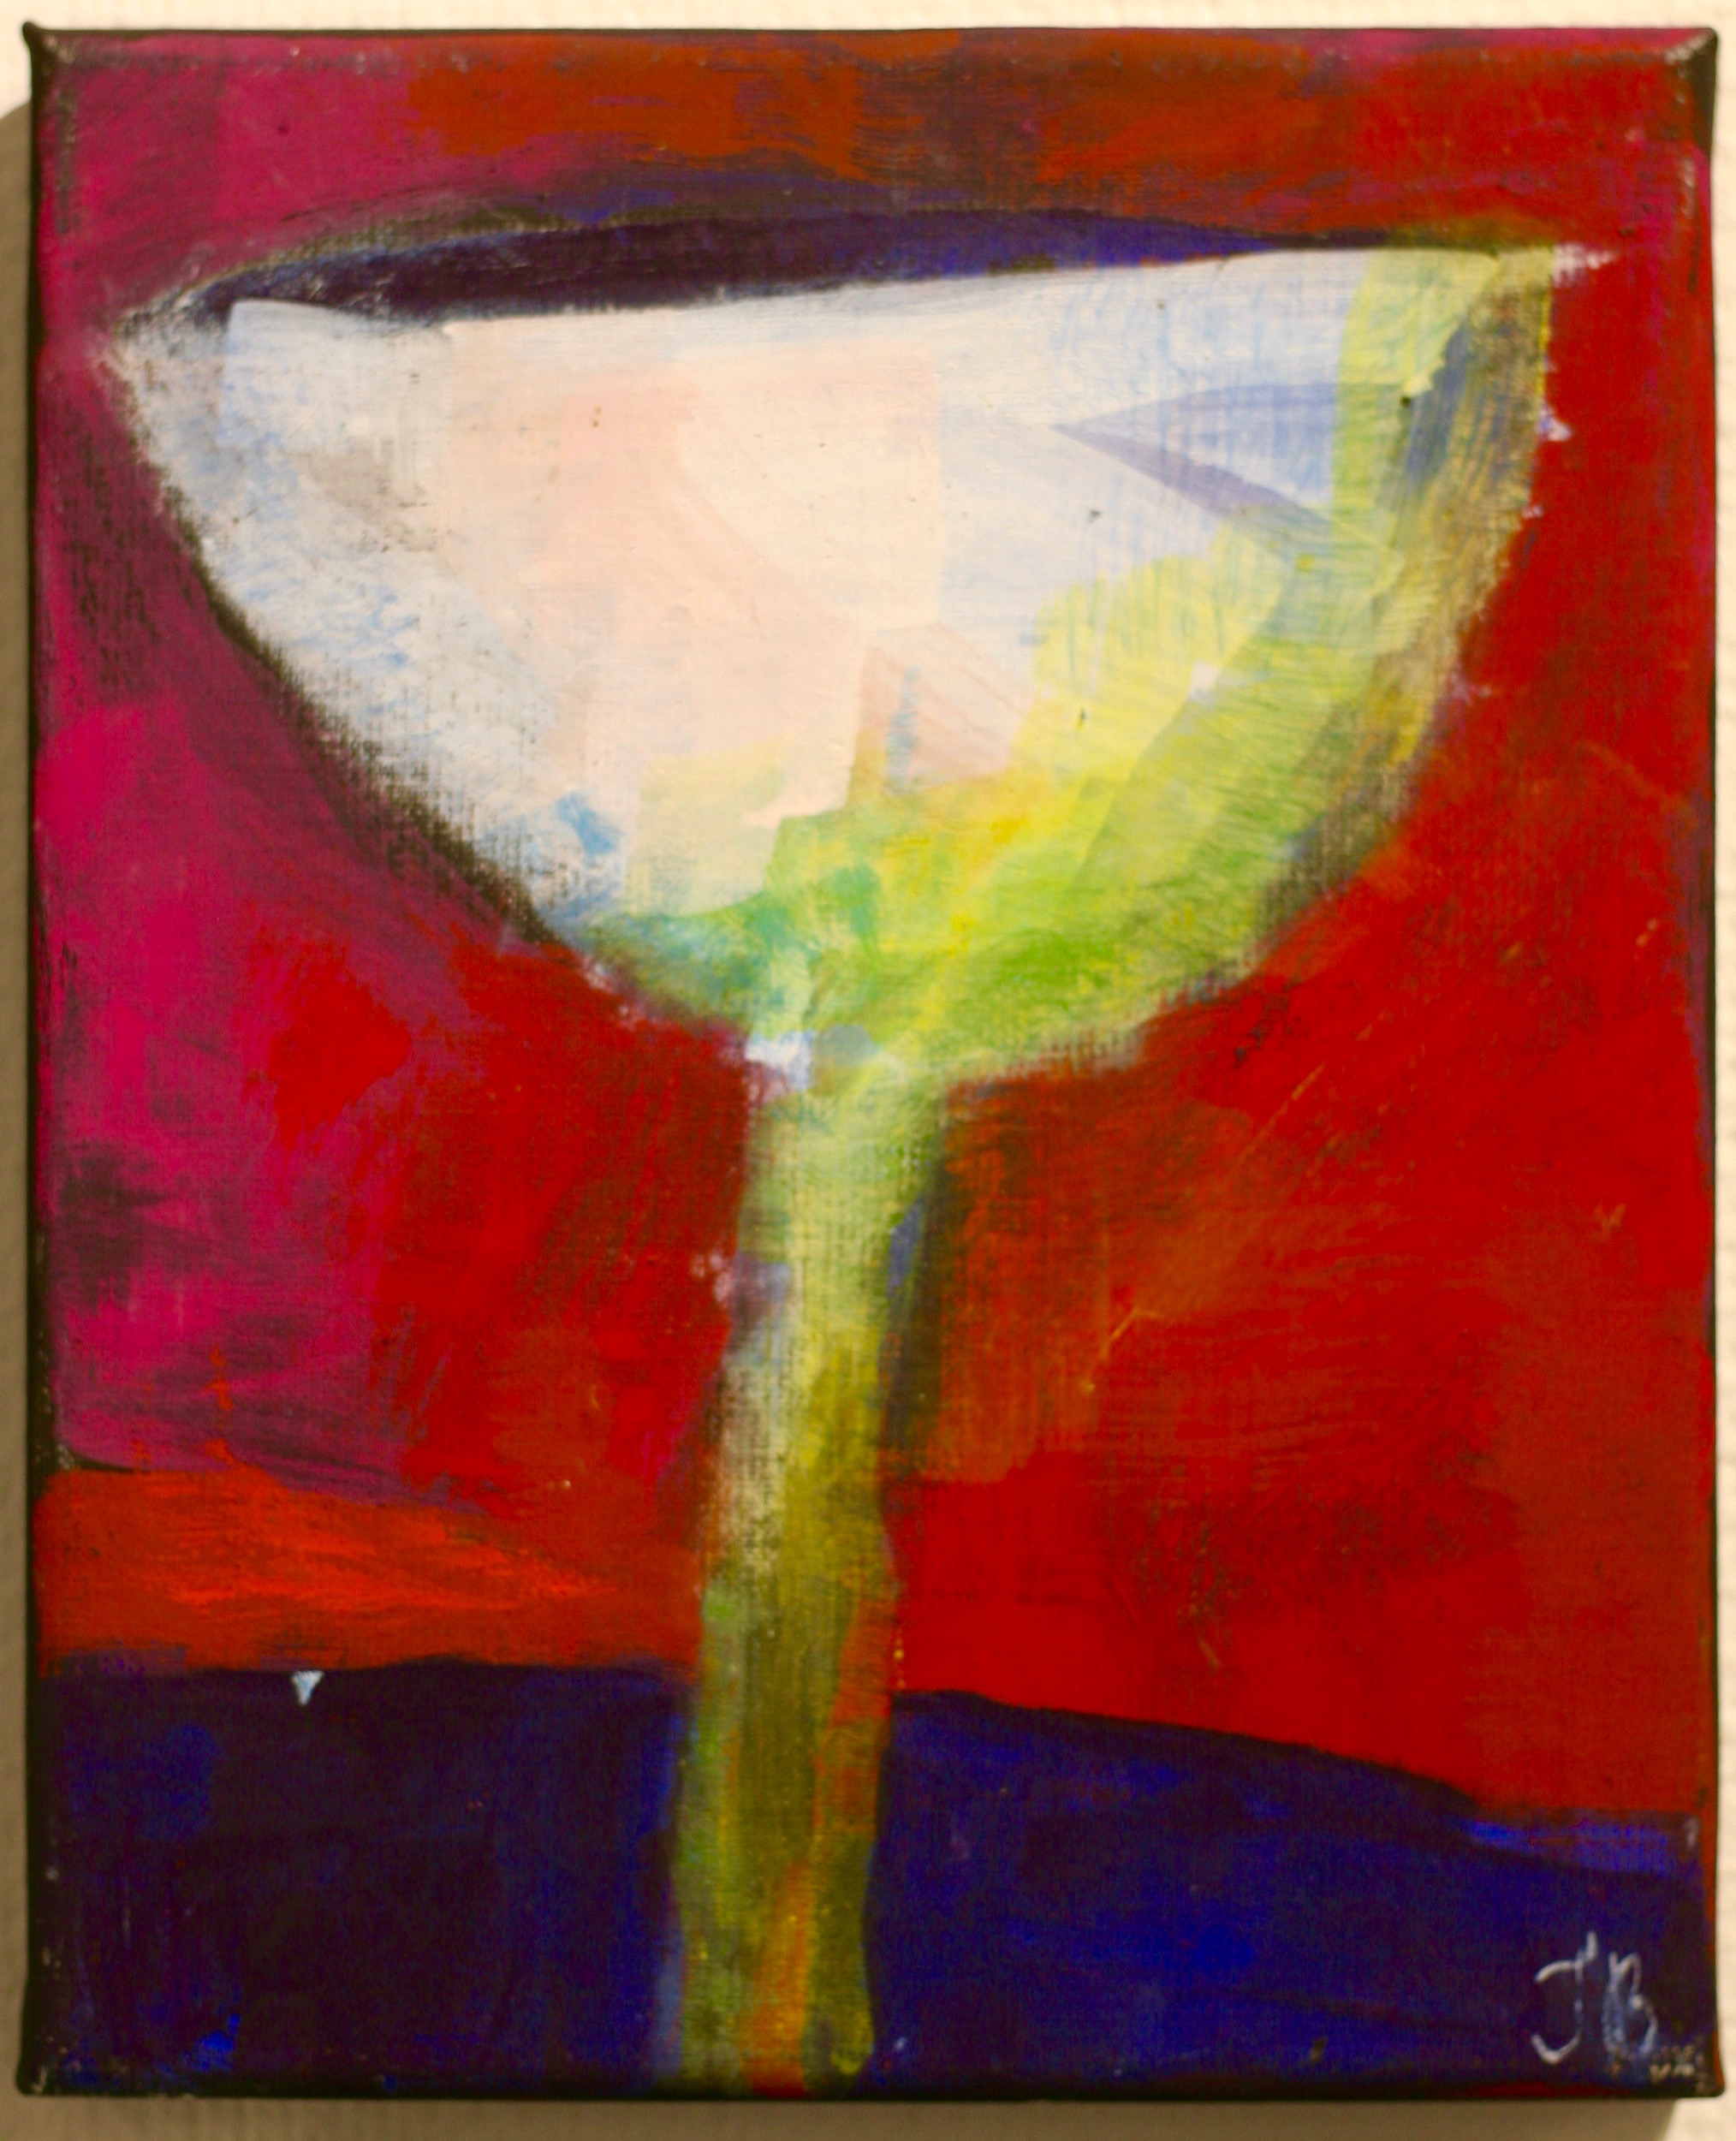 Inga Björstedt - Funnel (Tratt), oil tempera painting by